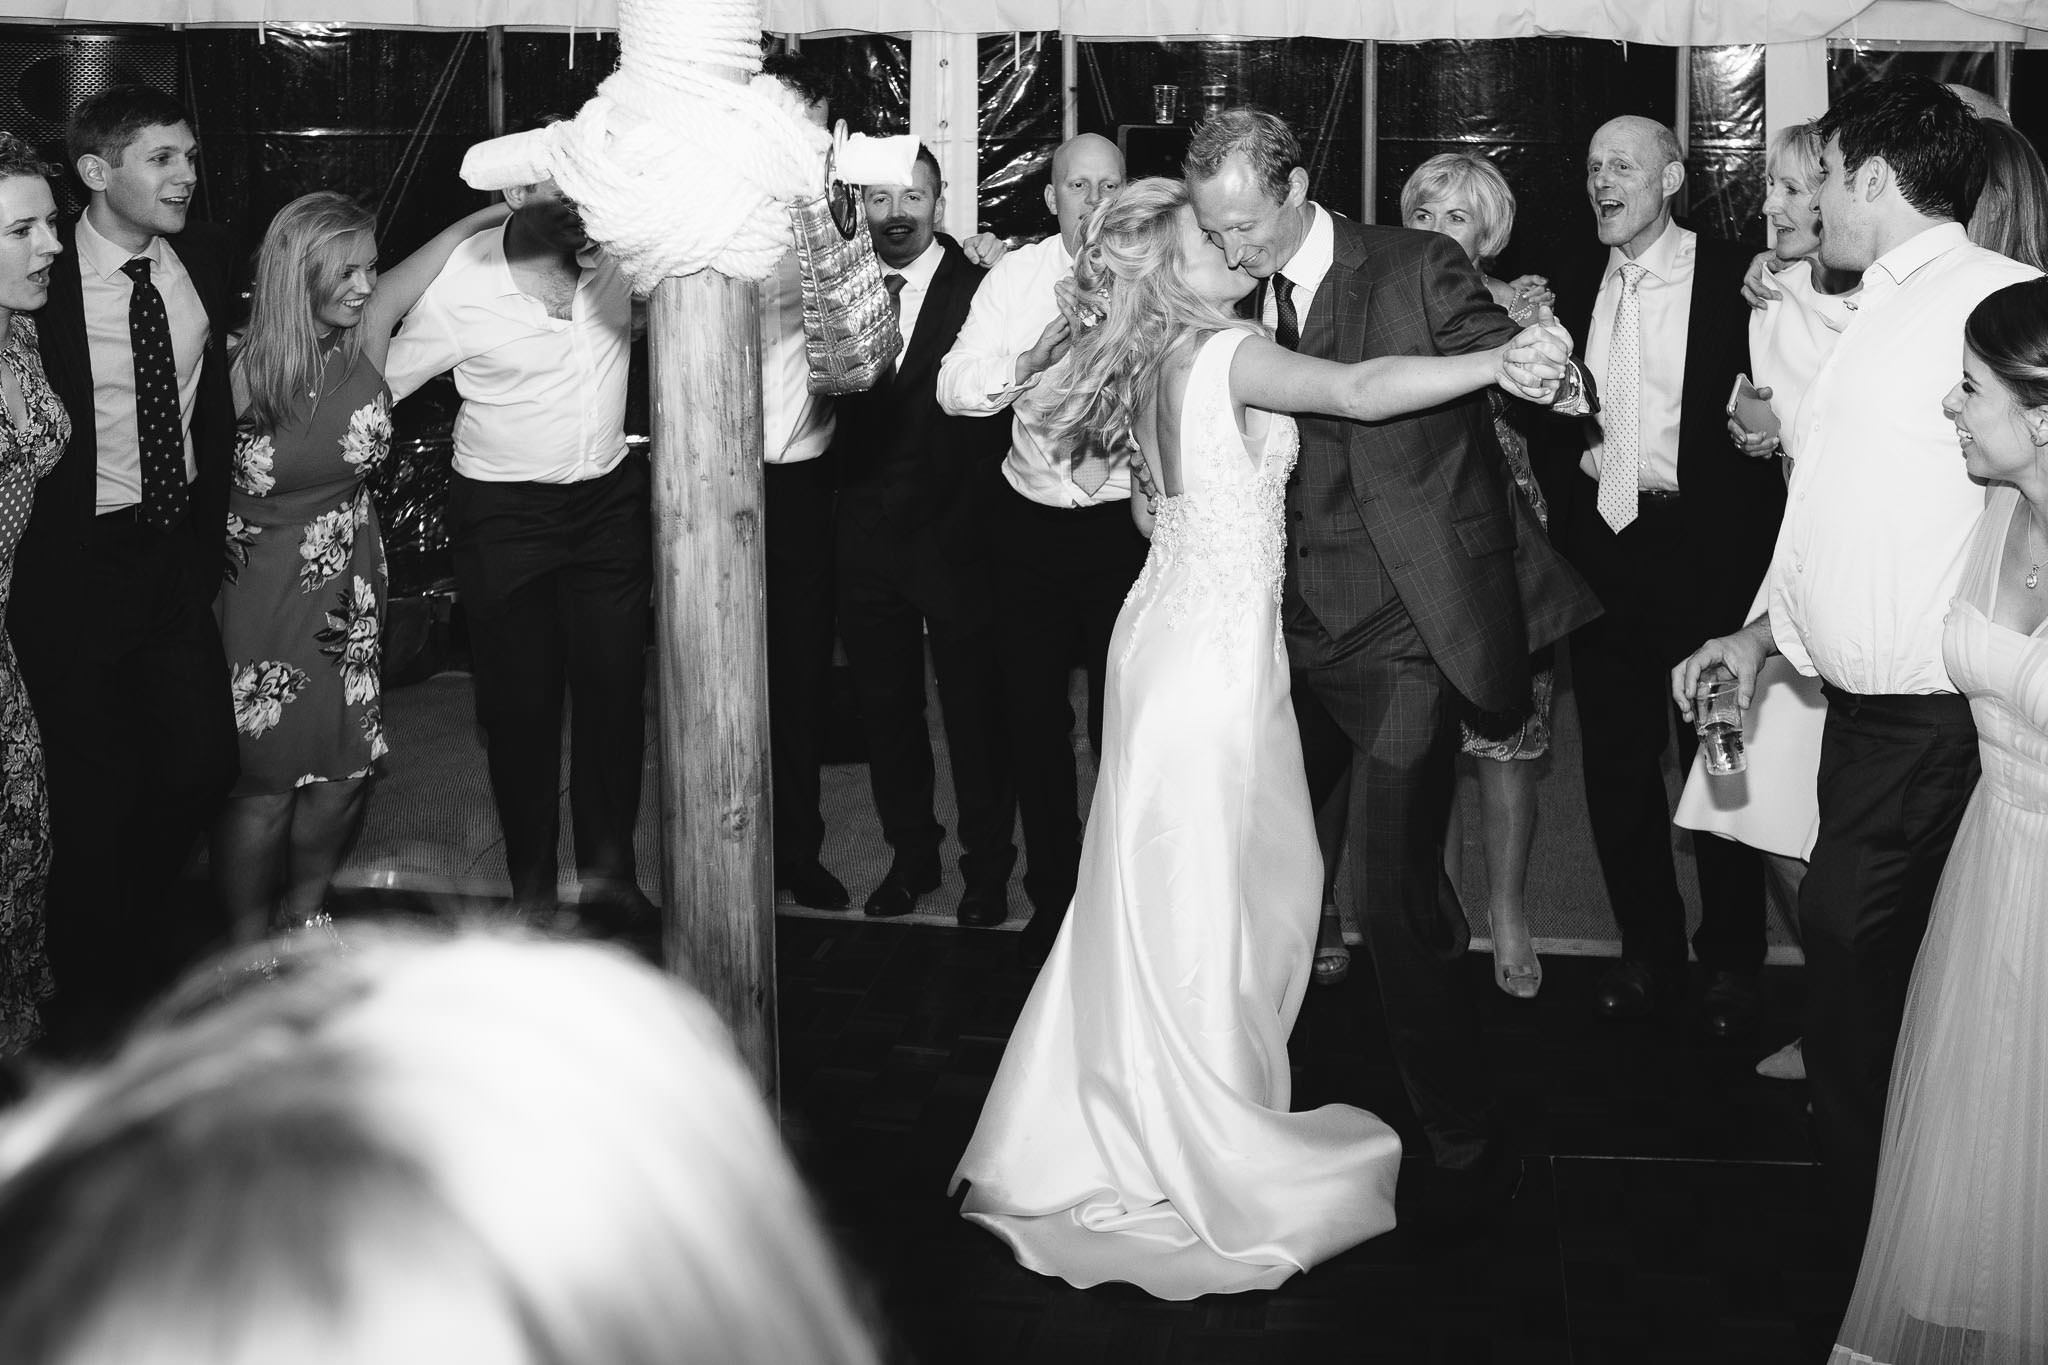 A black and white photo of the bride and groom dancing in front of their friends